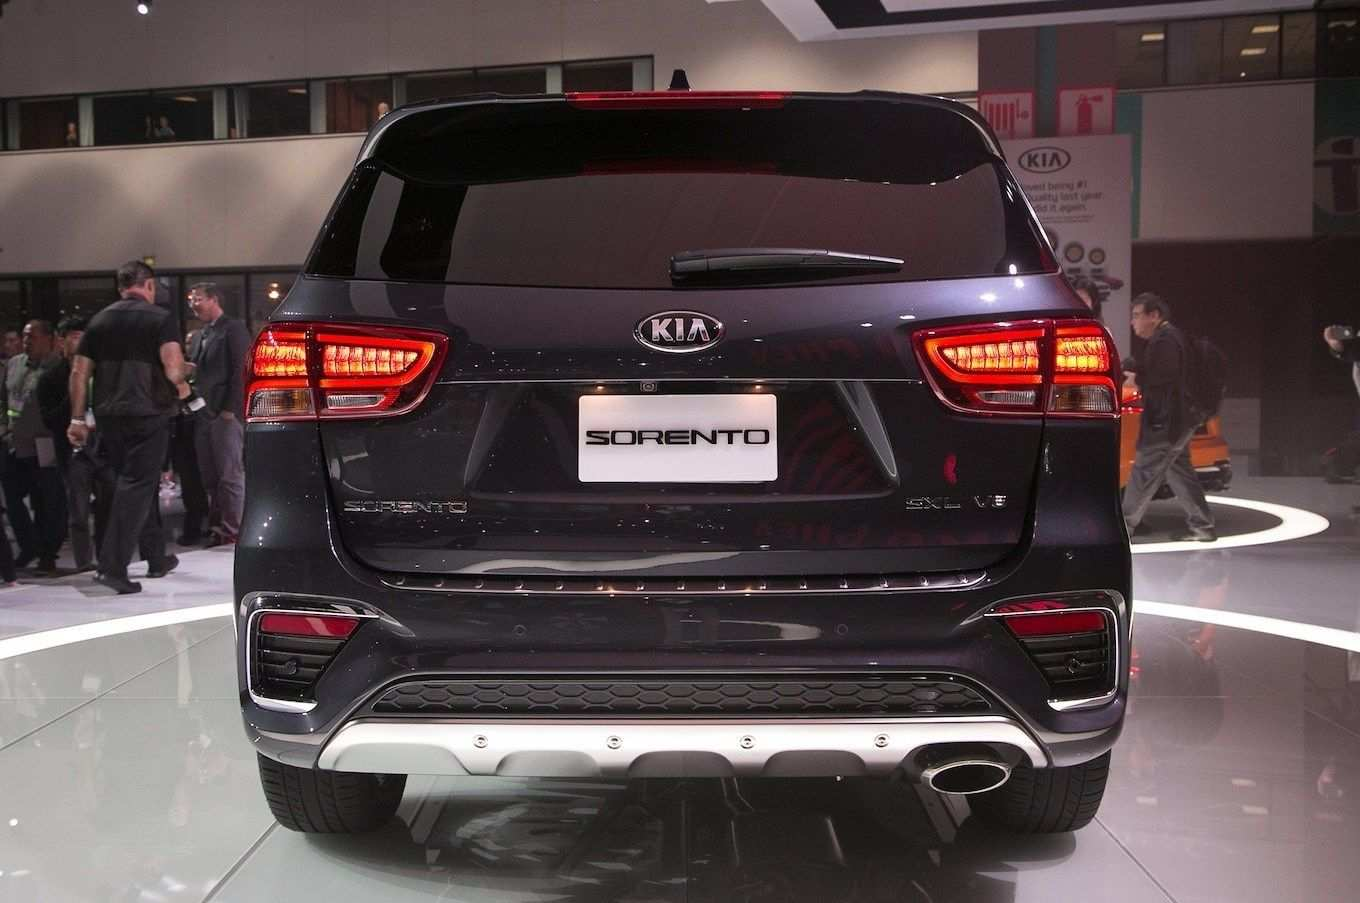 22 All New Kia Classic 2019 Dates Performance and New Engine by Kia Classic 2019 Dates